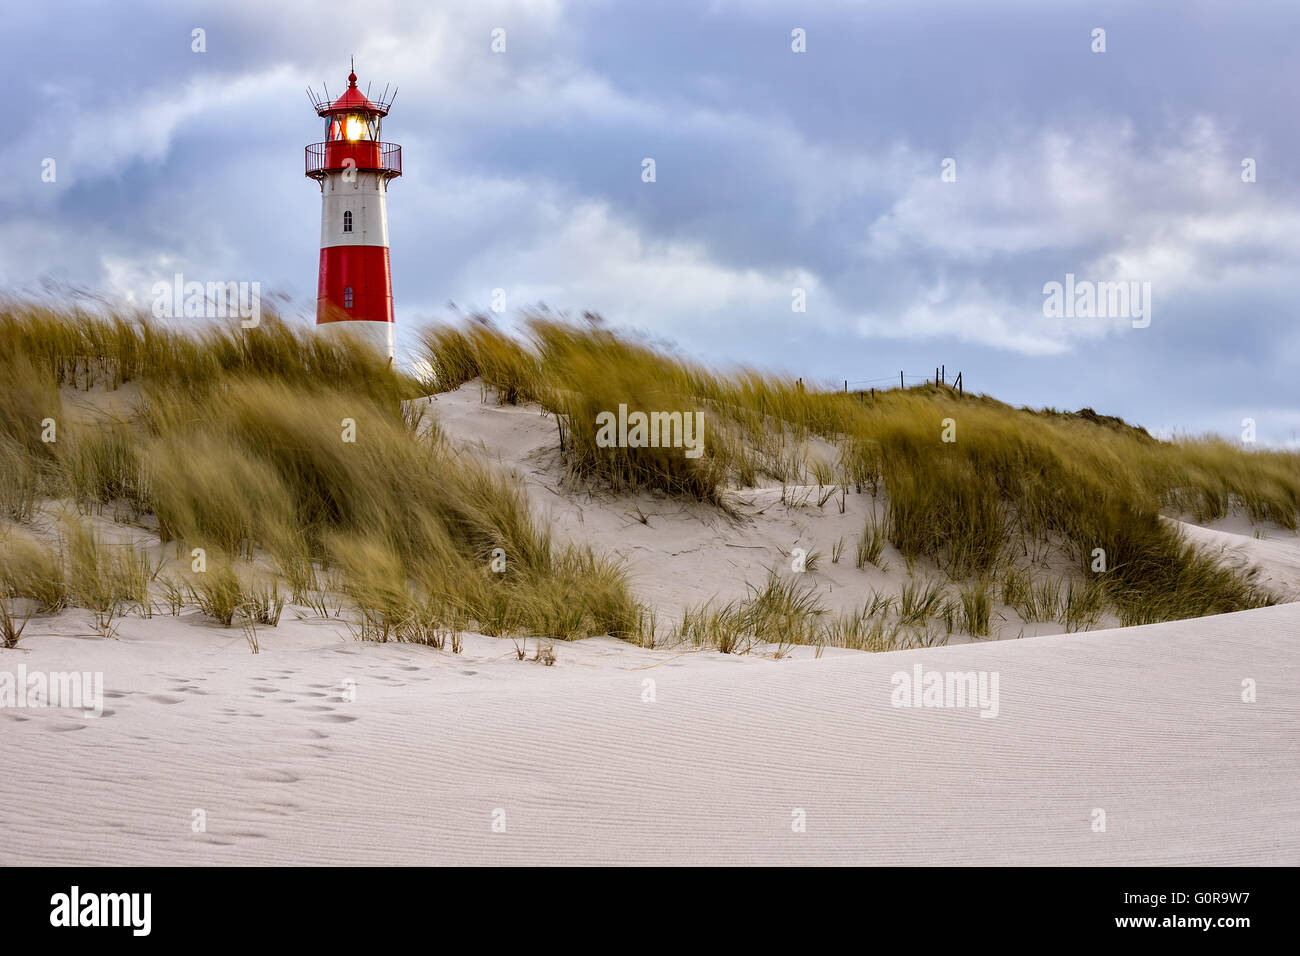 Stormy Weather - Lighthouse at List - Sylt, Germany - Stock Image